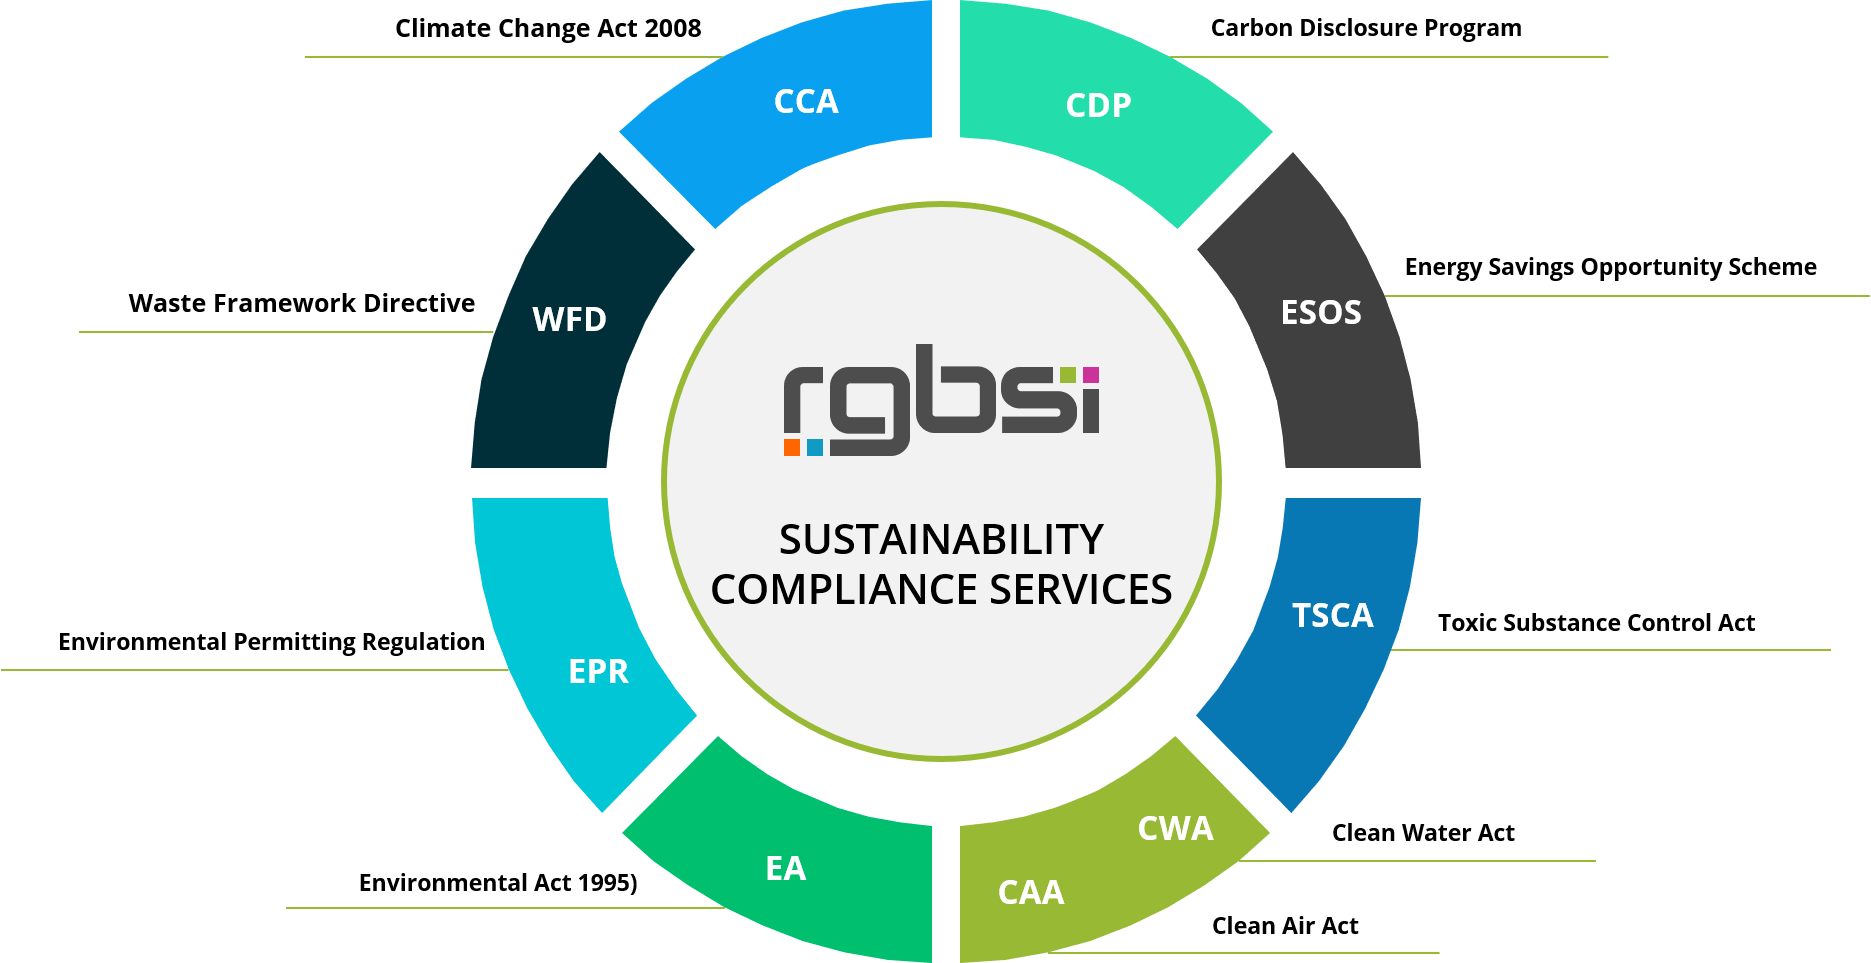 RGBSI Sustainability Compliance Services